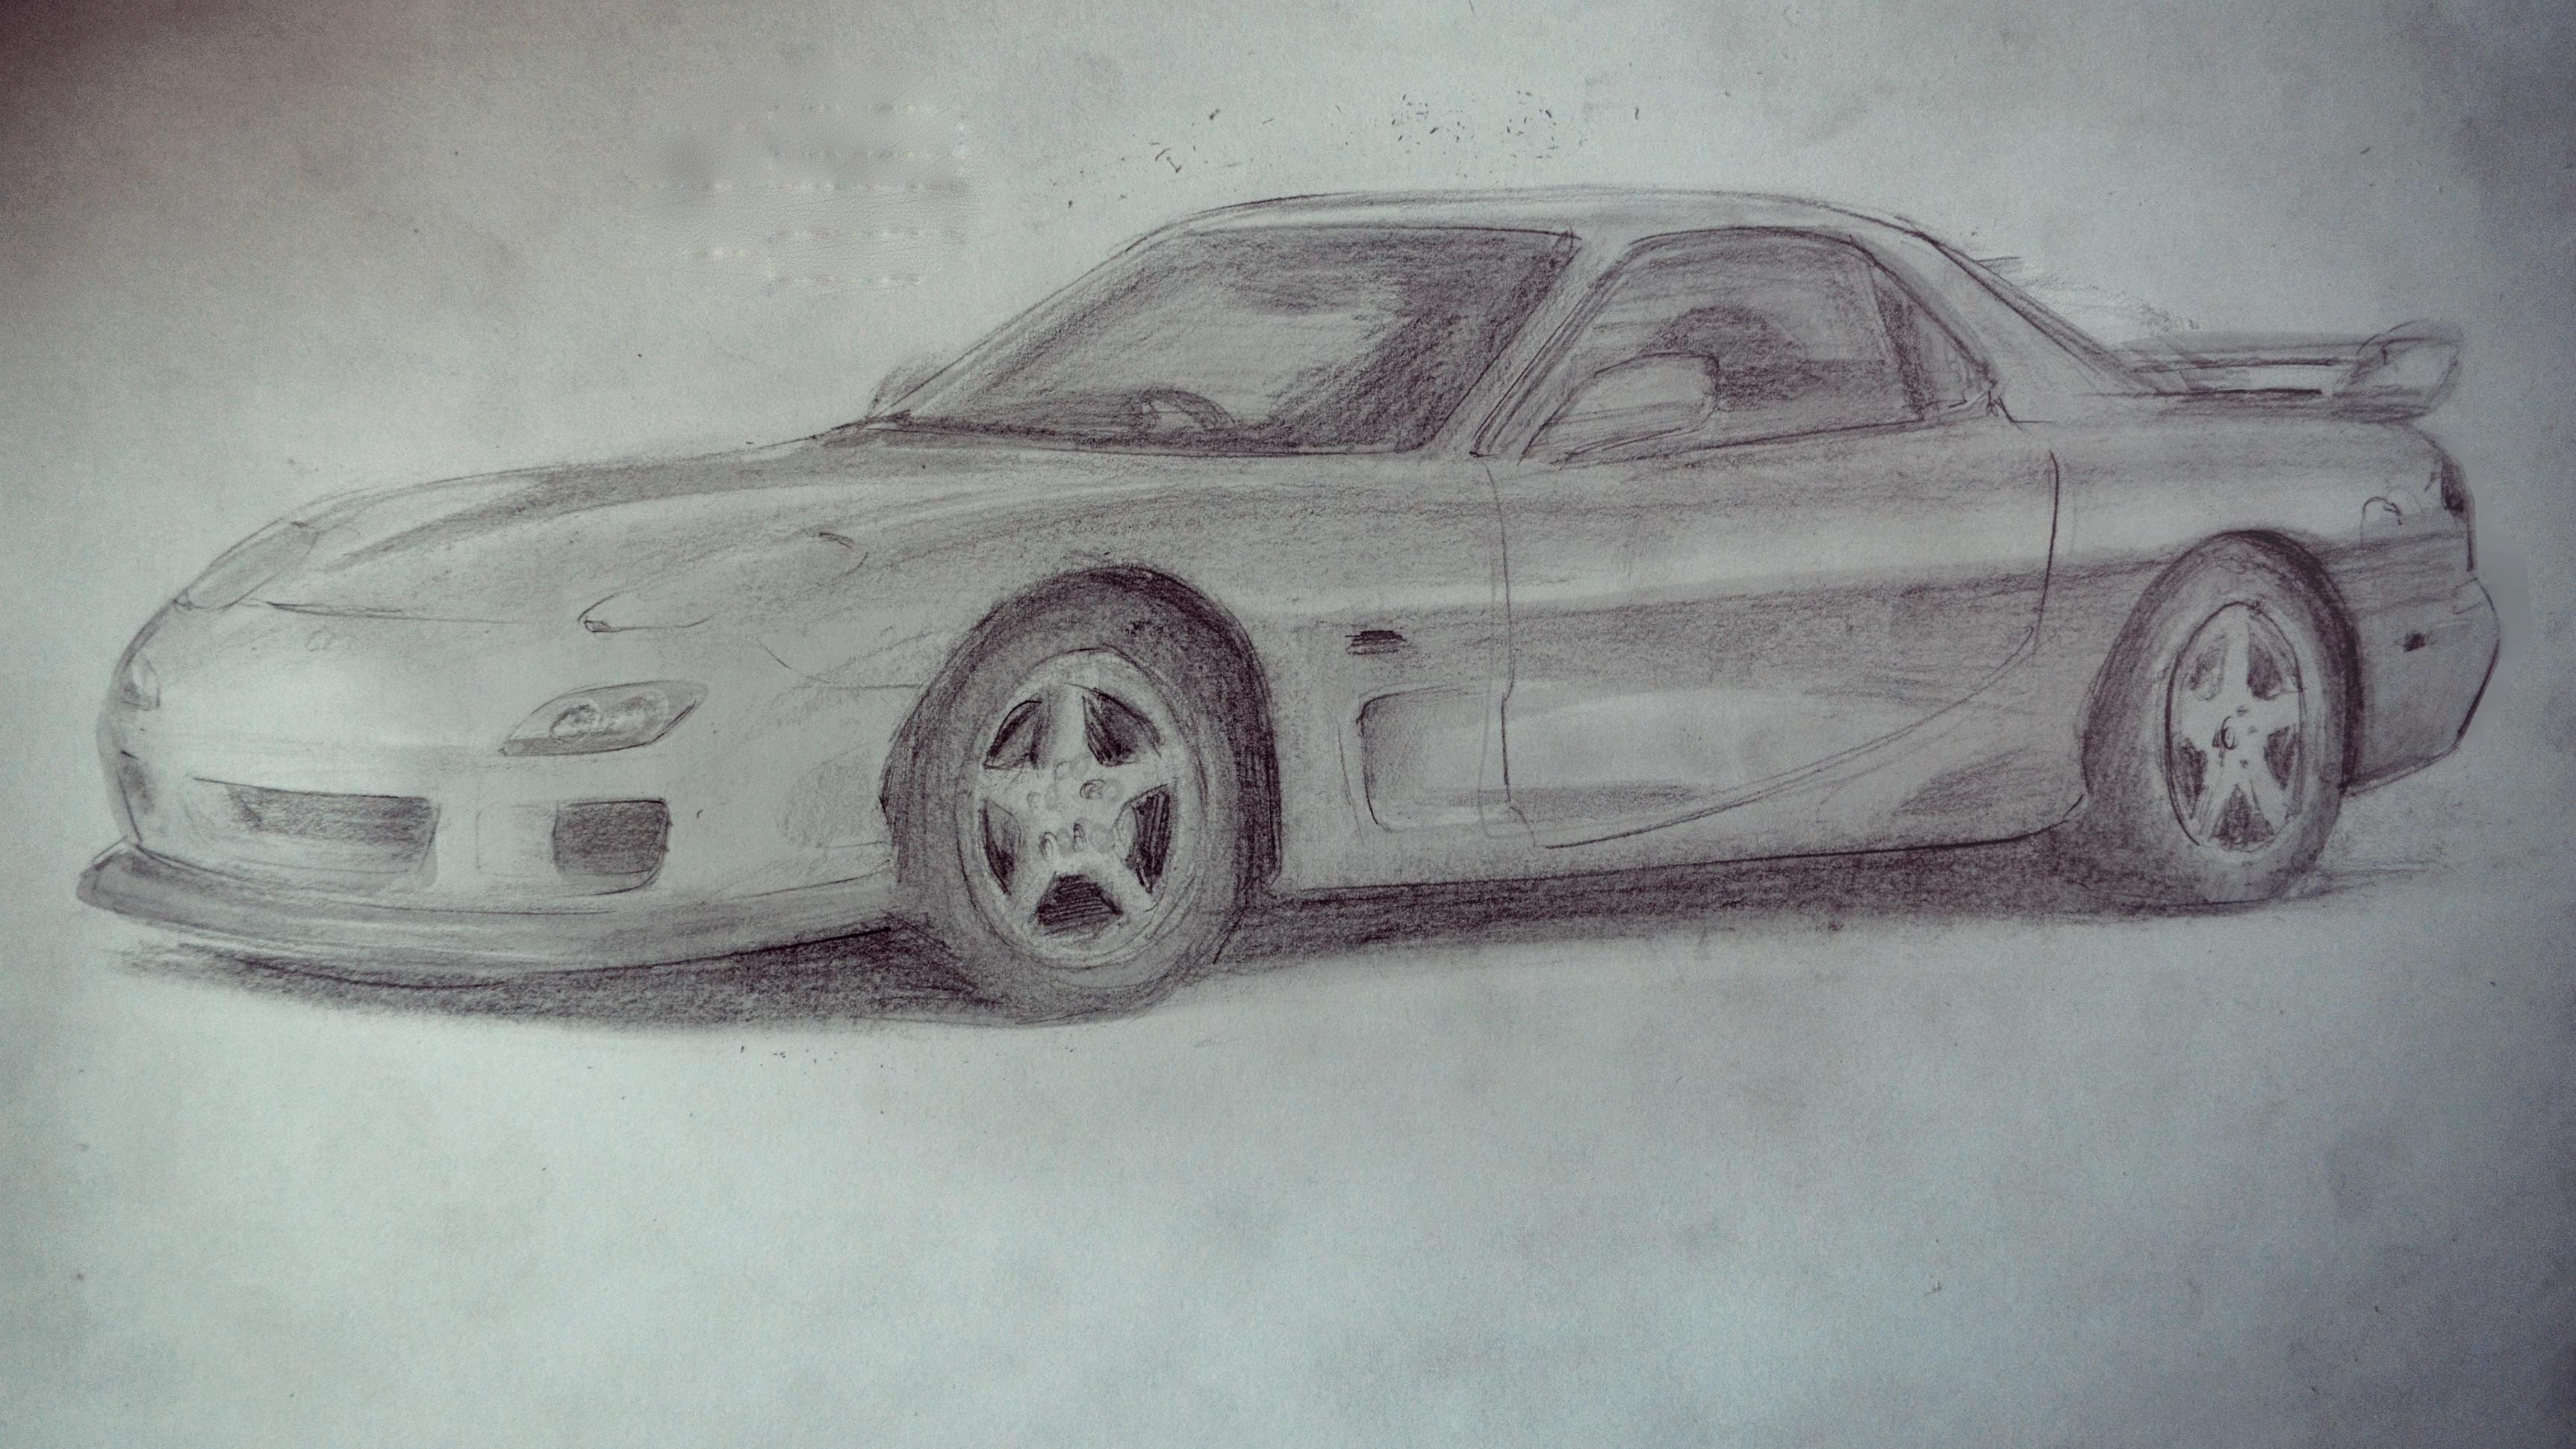 Mazda Rx7 Drawing At Free For Personal Use 93 Rx 7 Wiring Harness 3450x1940 Ive Drawn A